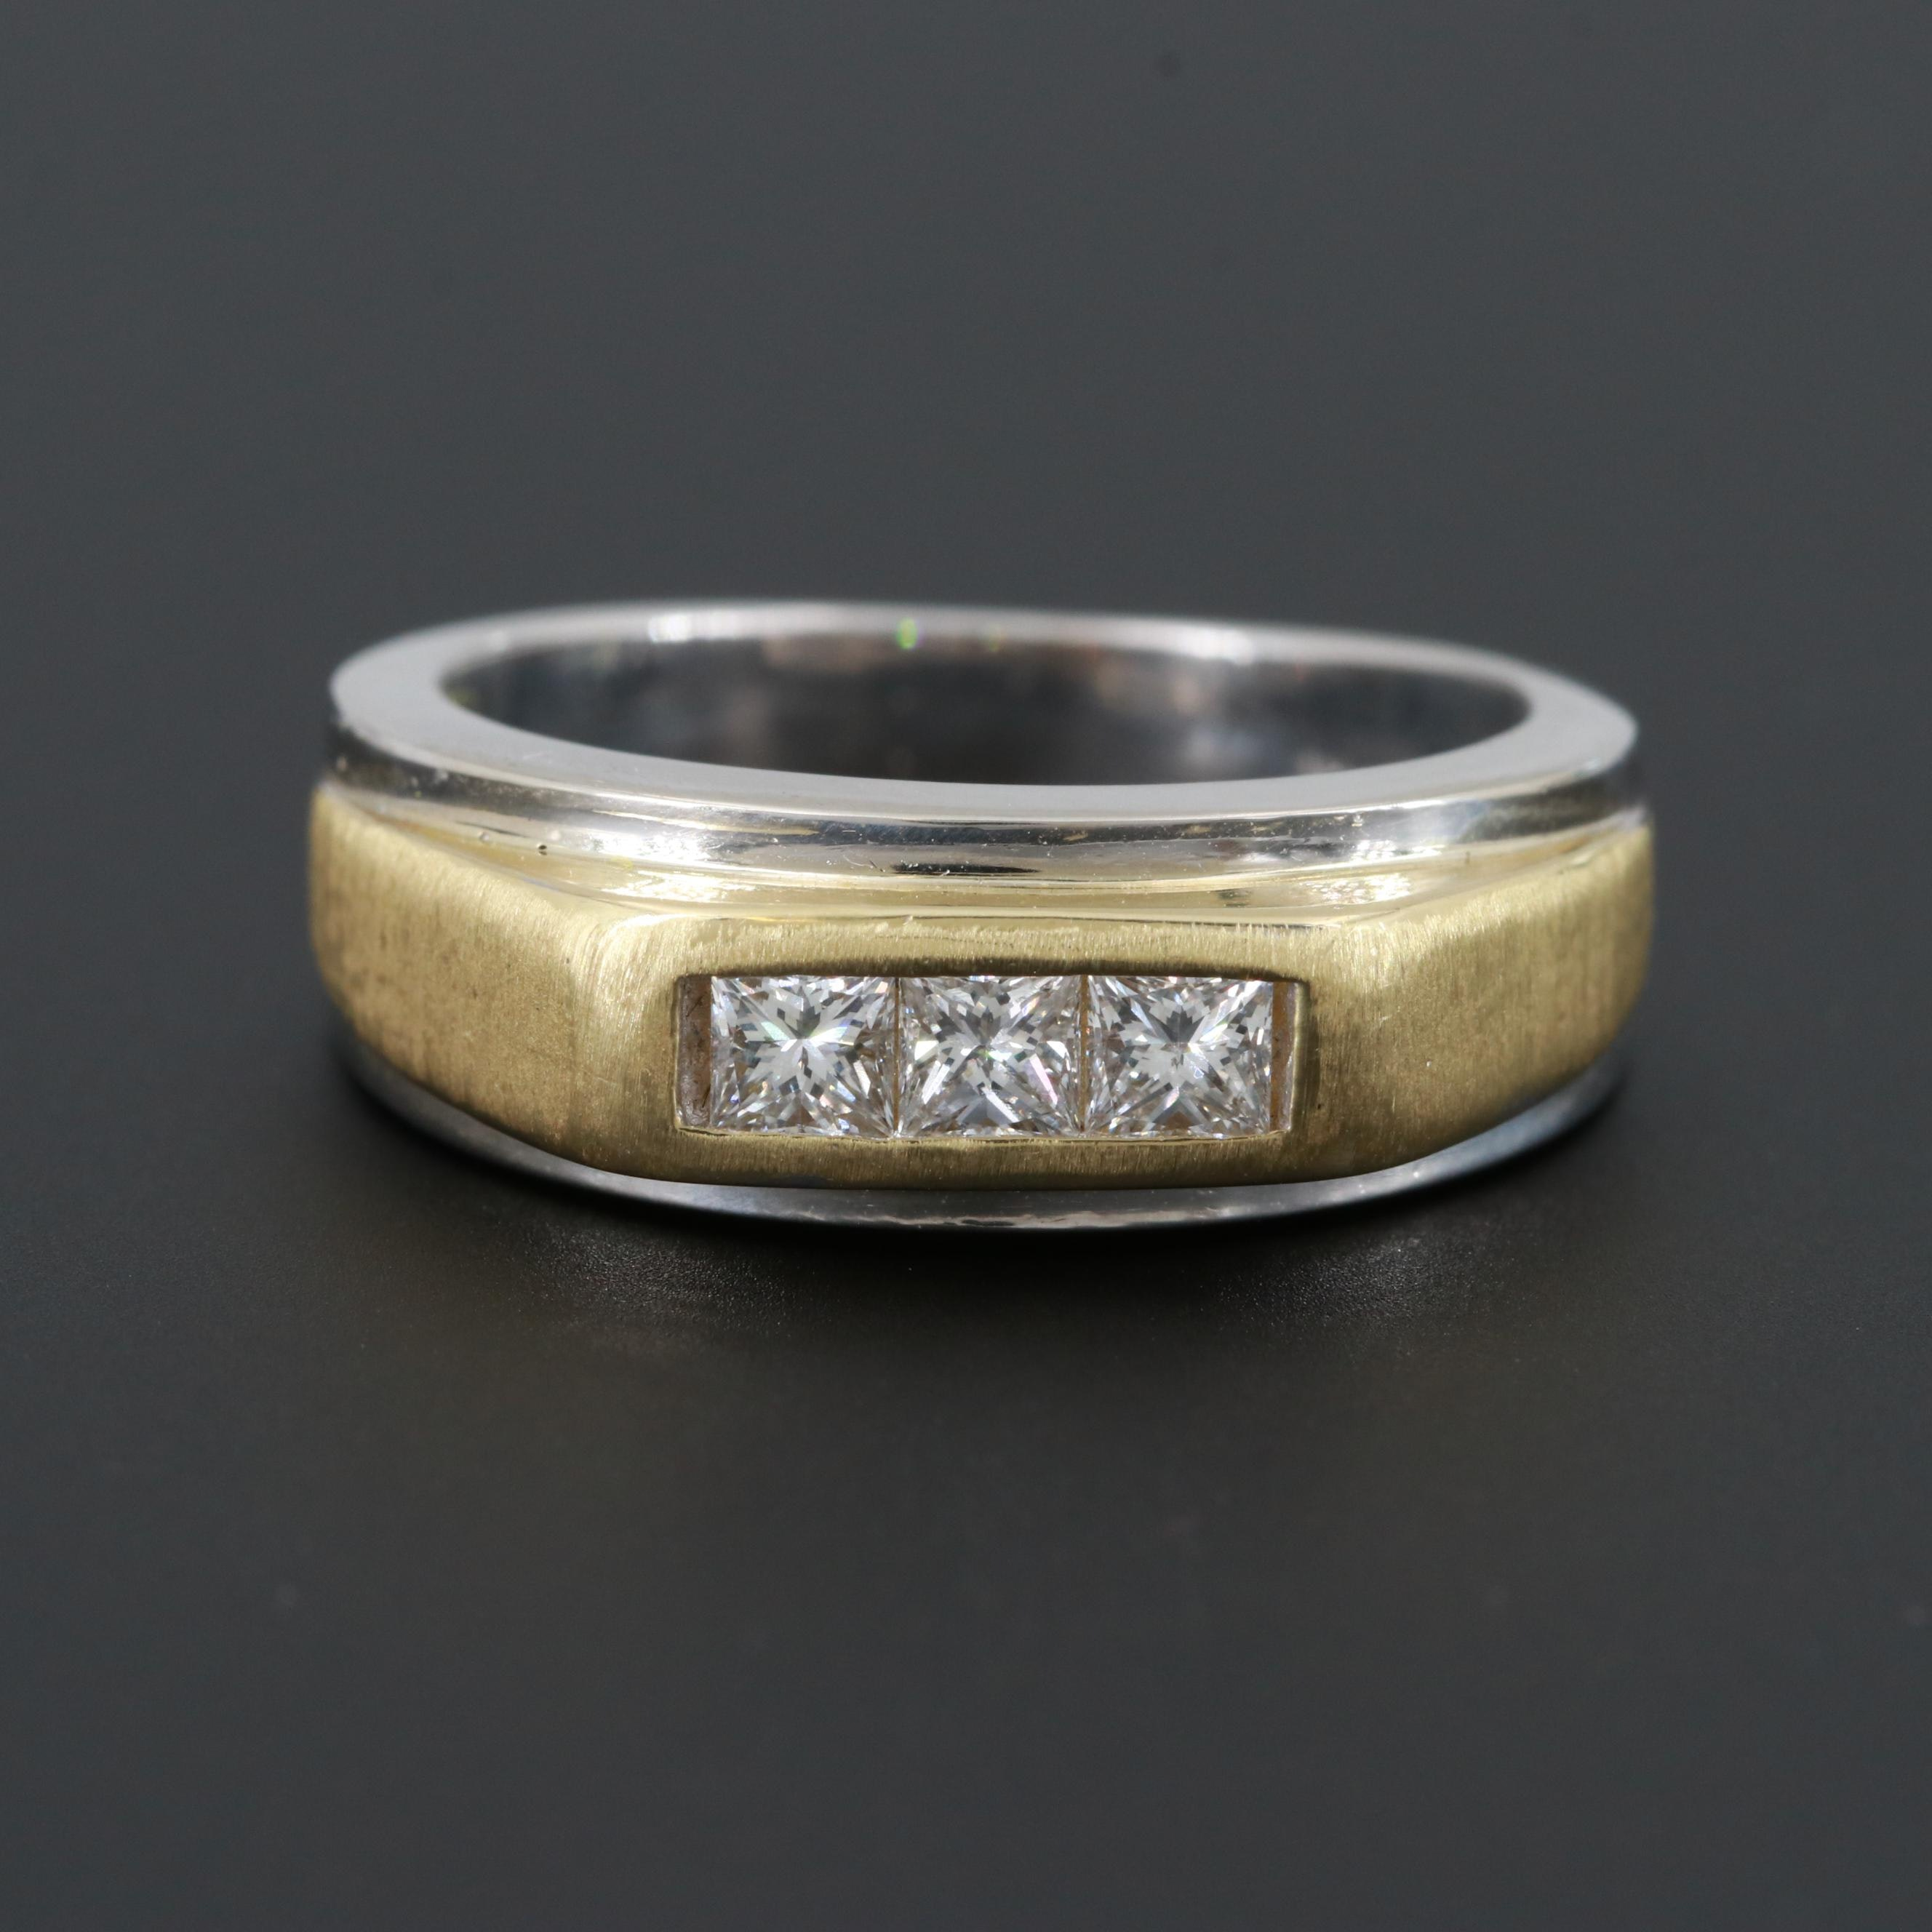 14K White Gold Diamond Ring with 18K Yellow Gold Accents